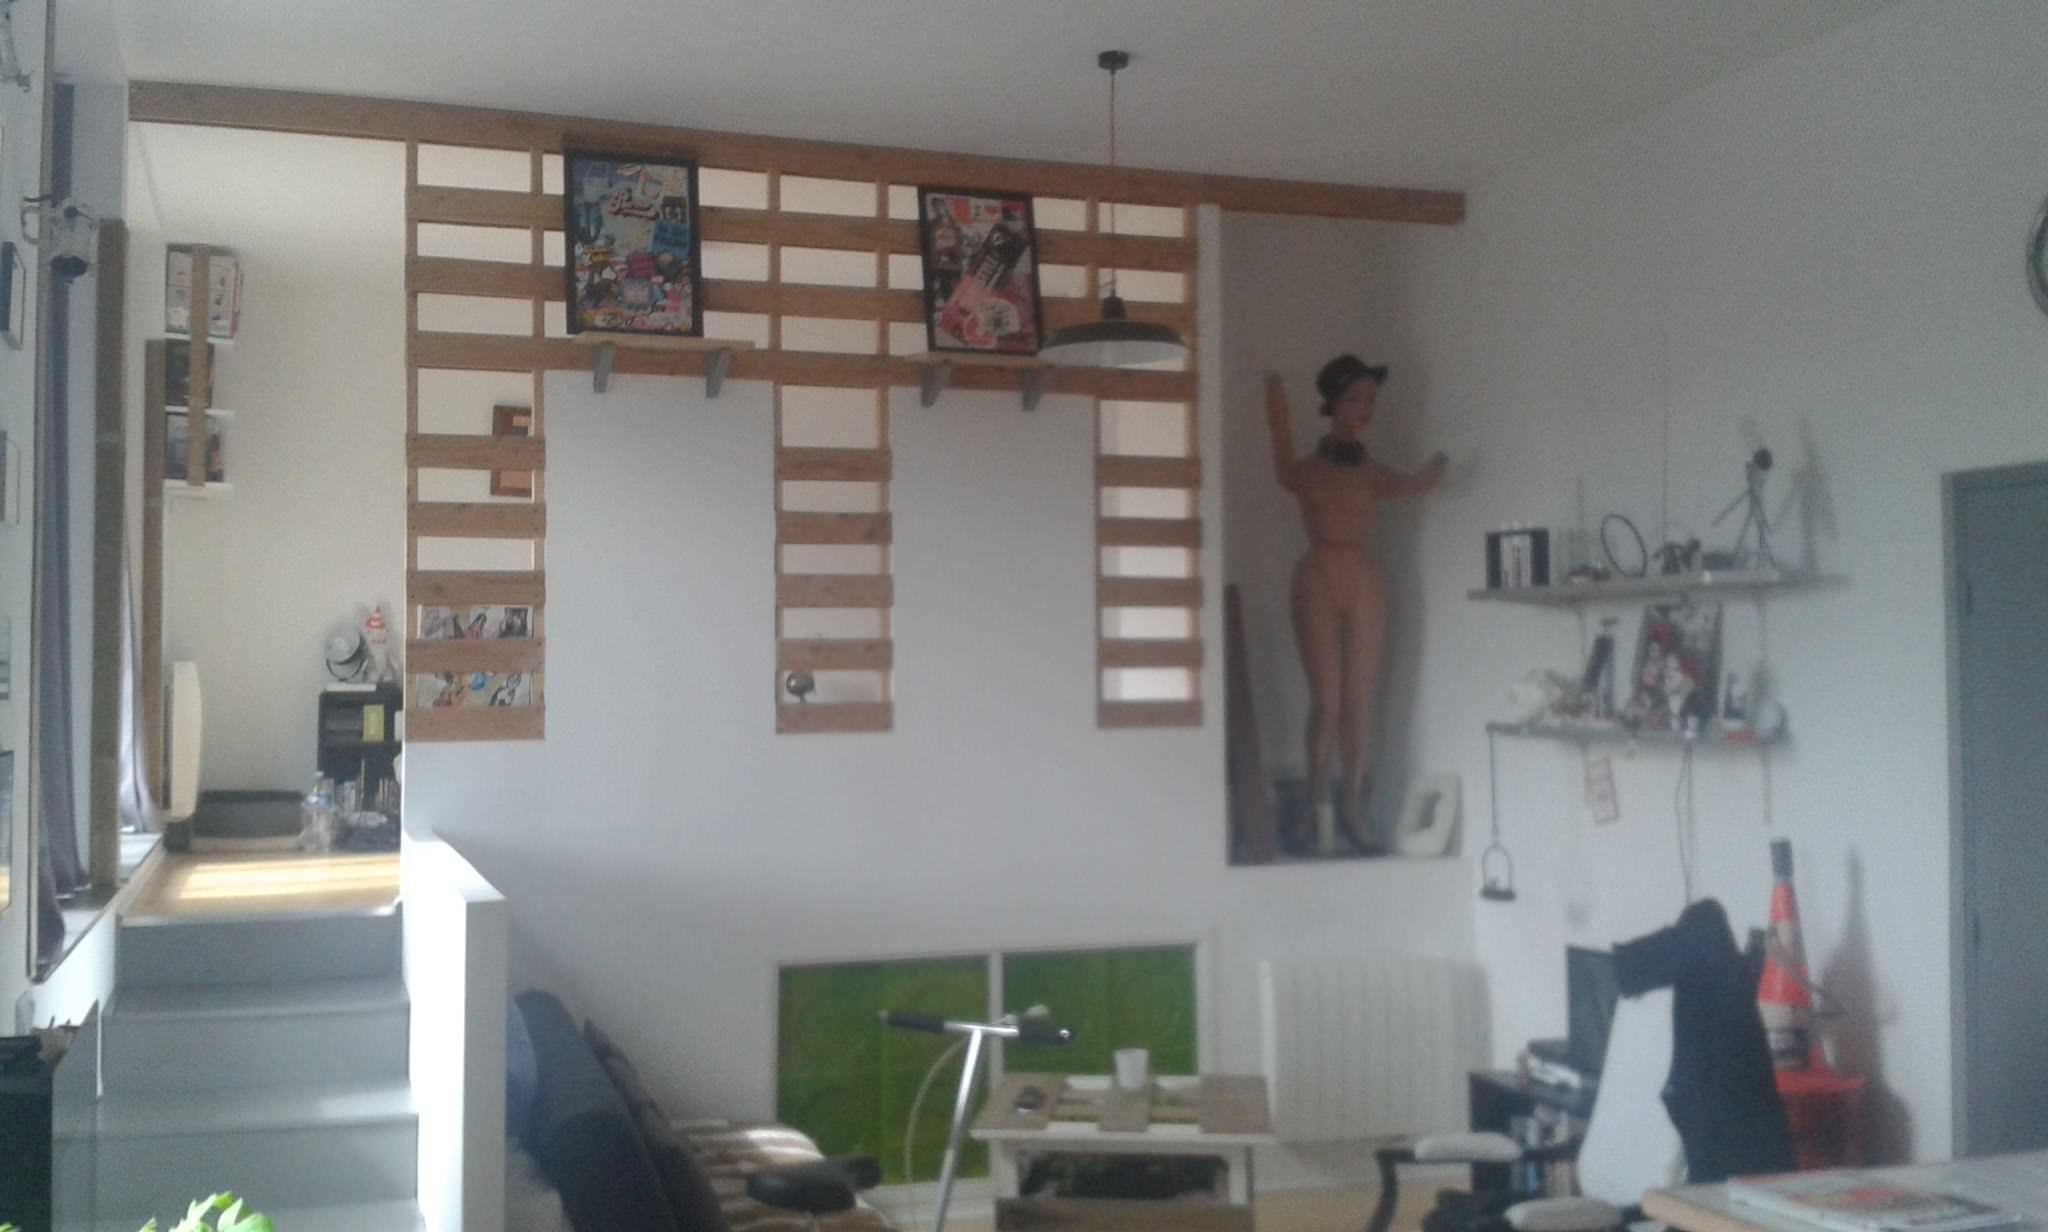 Original  Cloison En Palettes Recyclées / Pallet Wall Divider  #homedécor #livingroom #palletwall #recyclingwoodpallets Wall divider between the living room and bedroom made with recycled planks of wooden pallets.   Cloison de séparation entre le salon et la chambre...